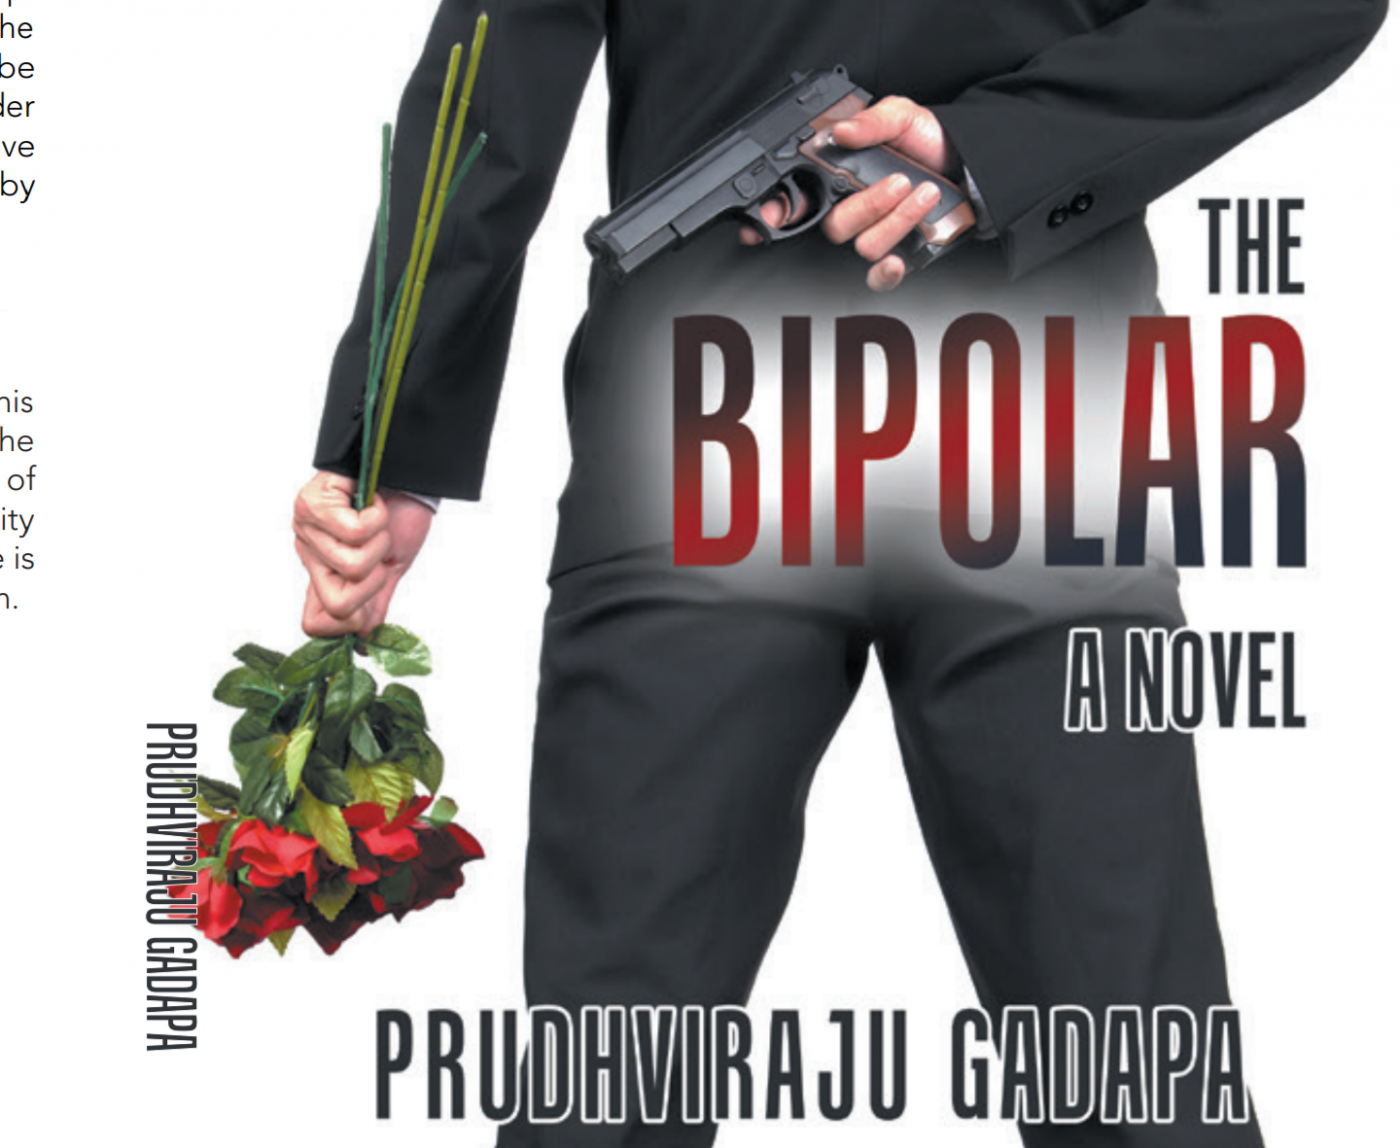 The Bipolar Book Series